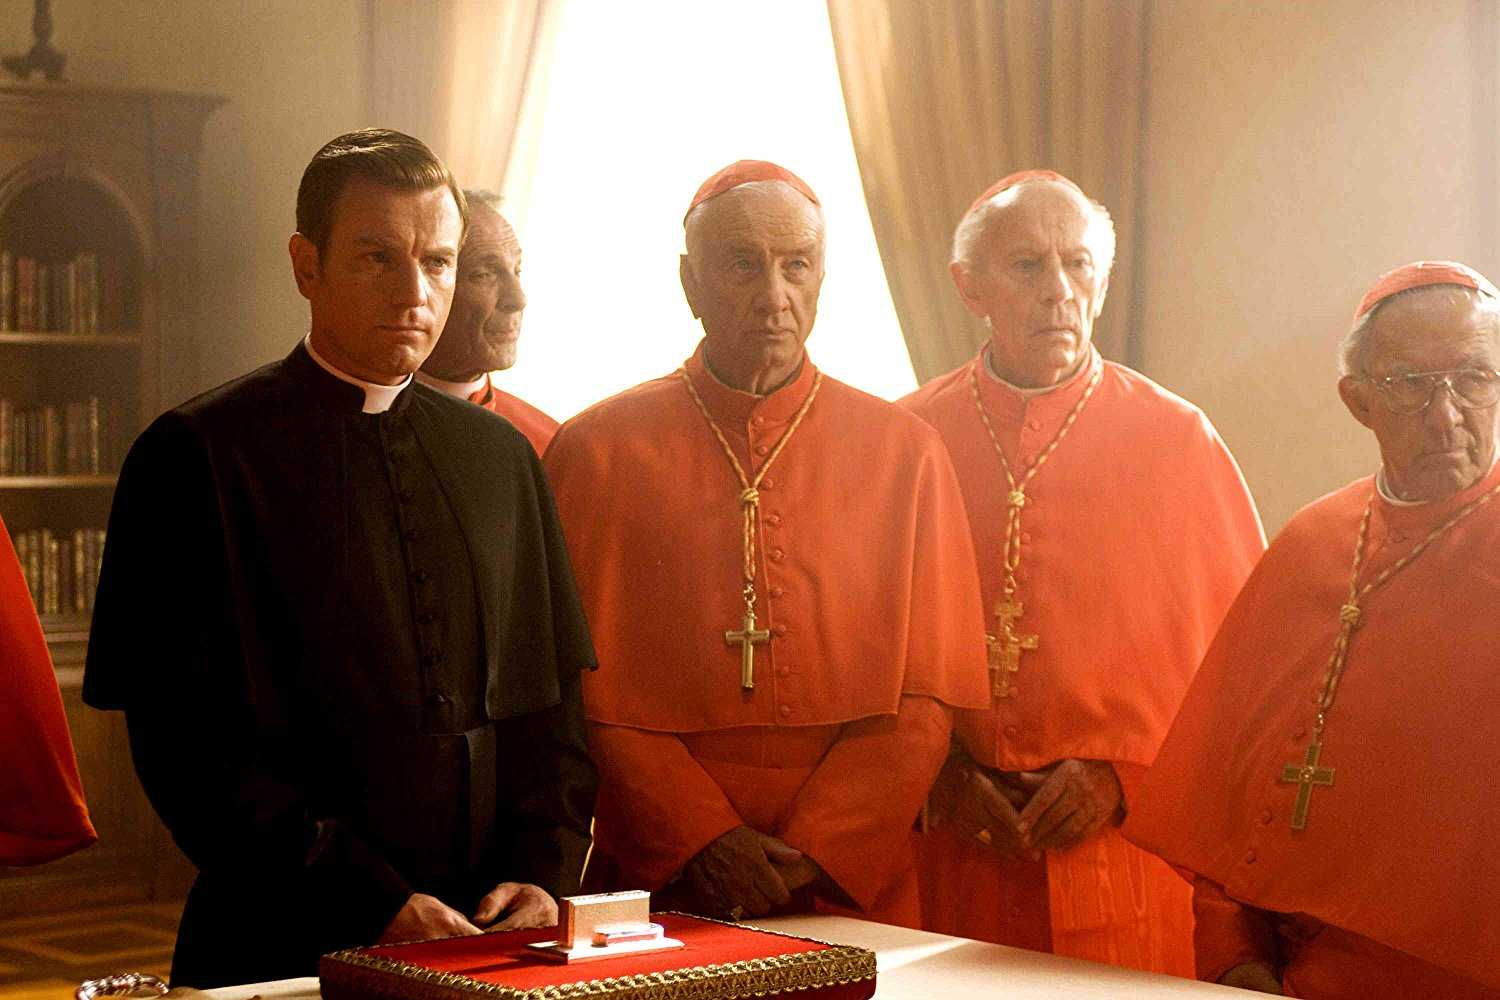 Ewan McGregor as the Camerlengo in Angels & Demons (2009)